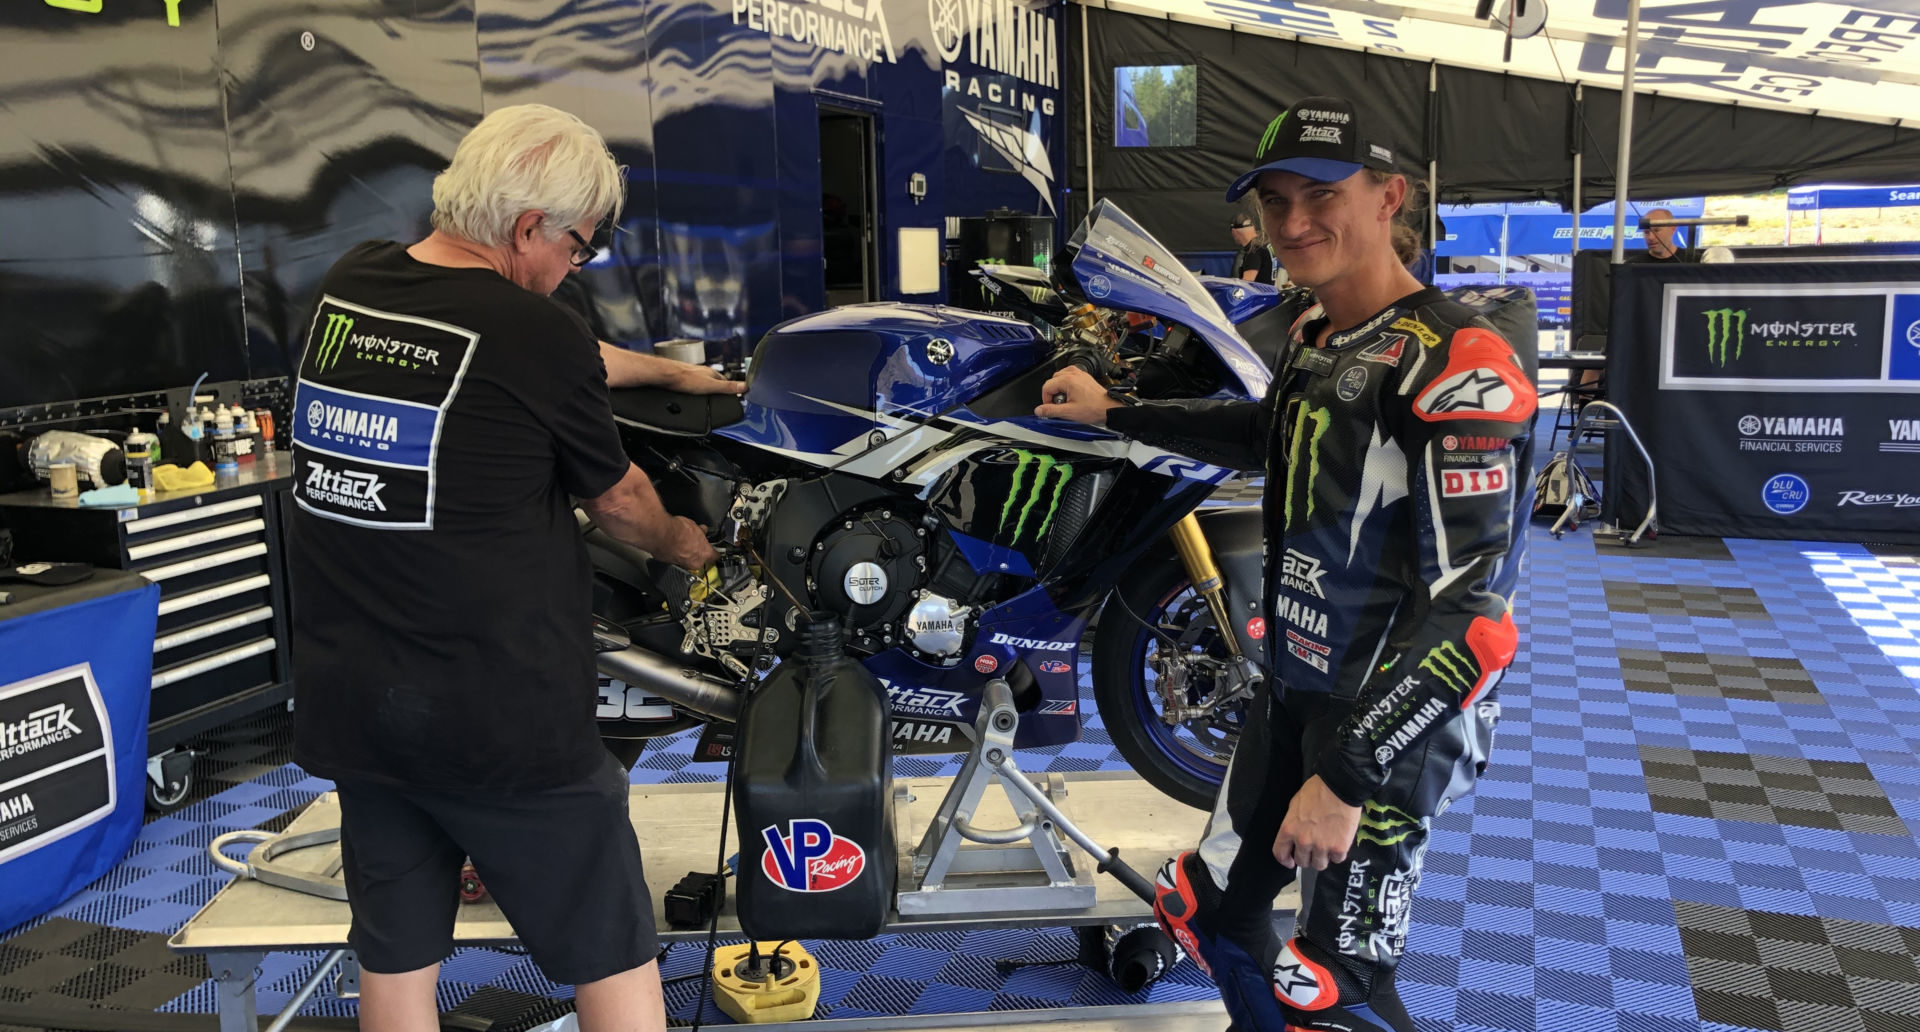 Monster Energy Attack Performance Yamaha rider Jake Gagne (right) with mechanic Mike Canfield (left) at Ridge Motorsports Park.